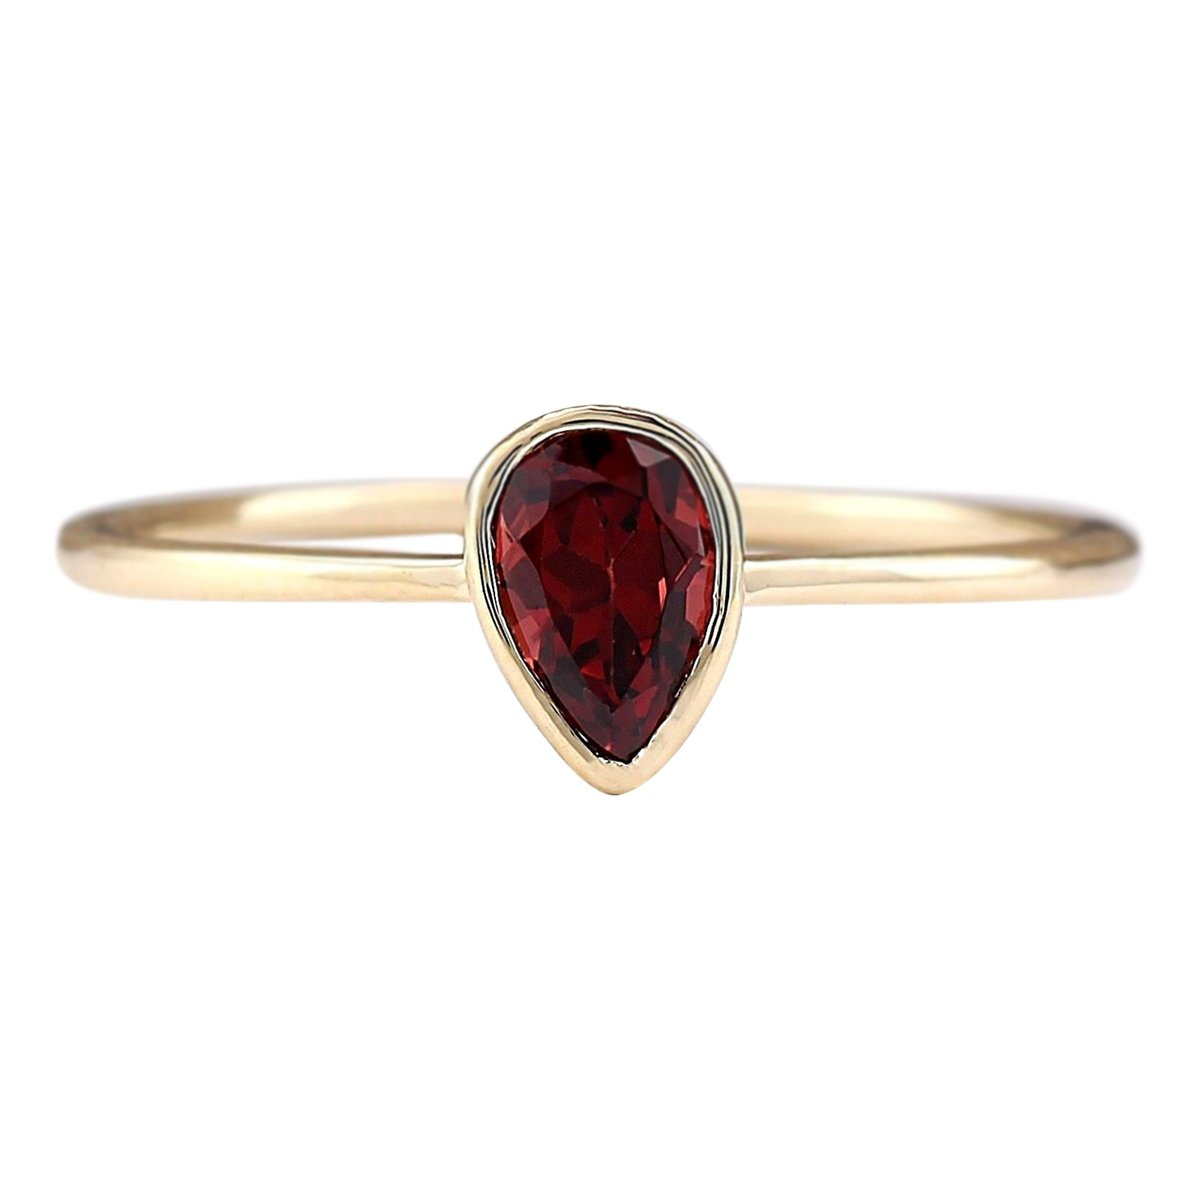 0.5 Carat Natural Red Garnet 14K Yellow Gold Solitaire Promise Ring for Women